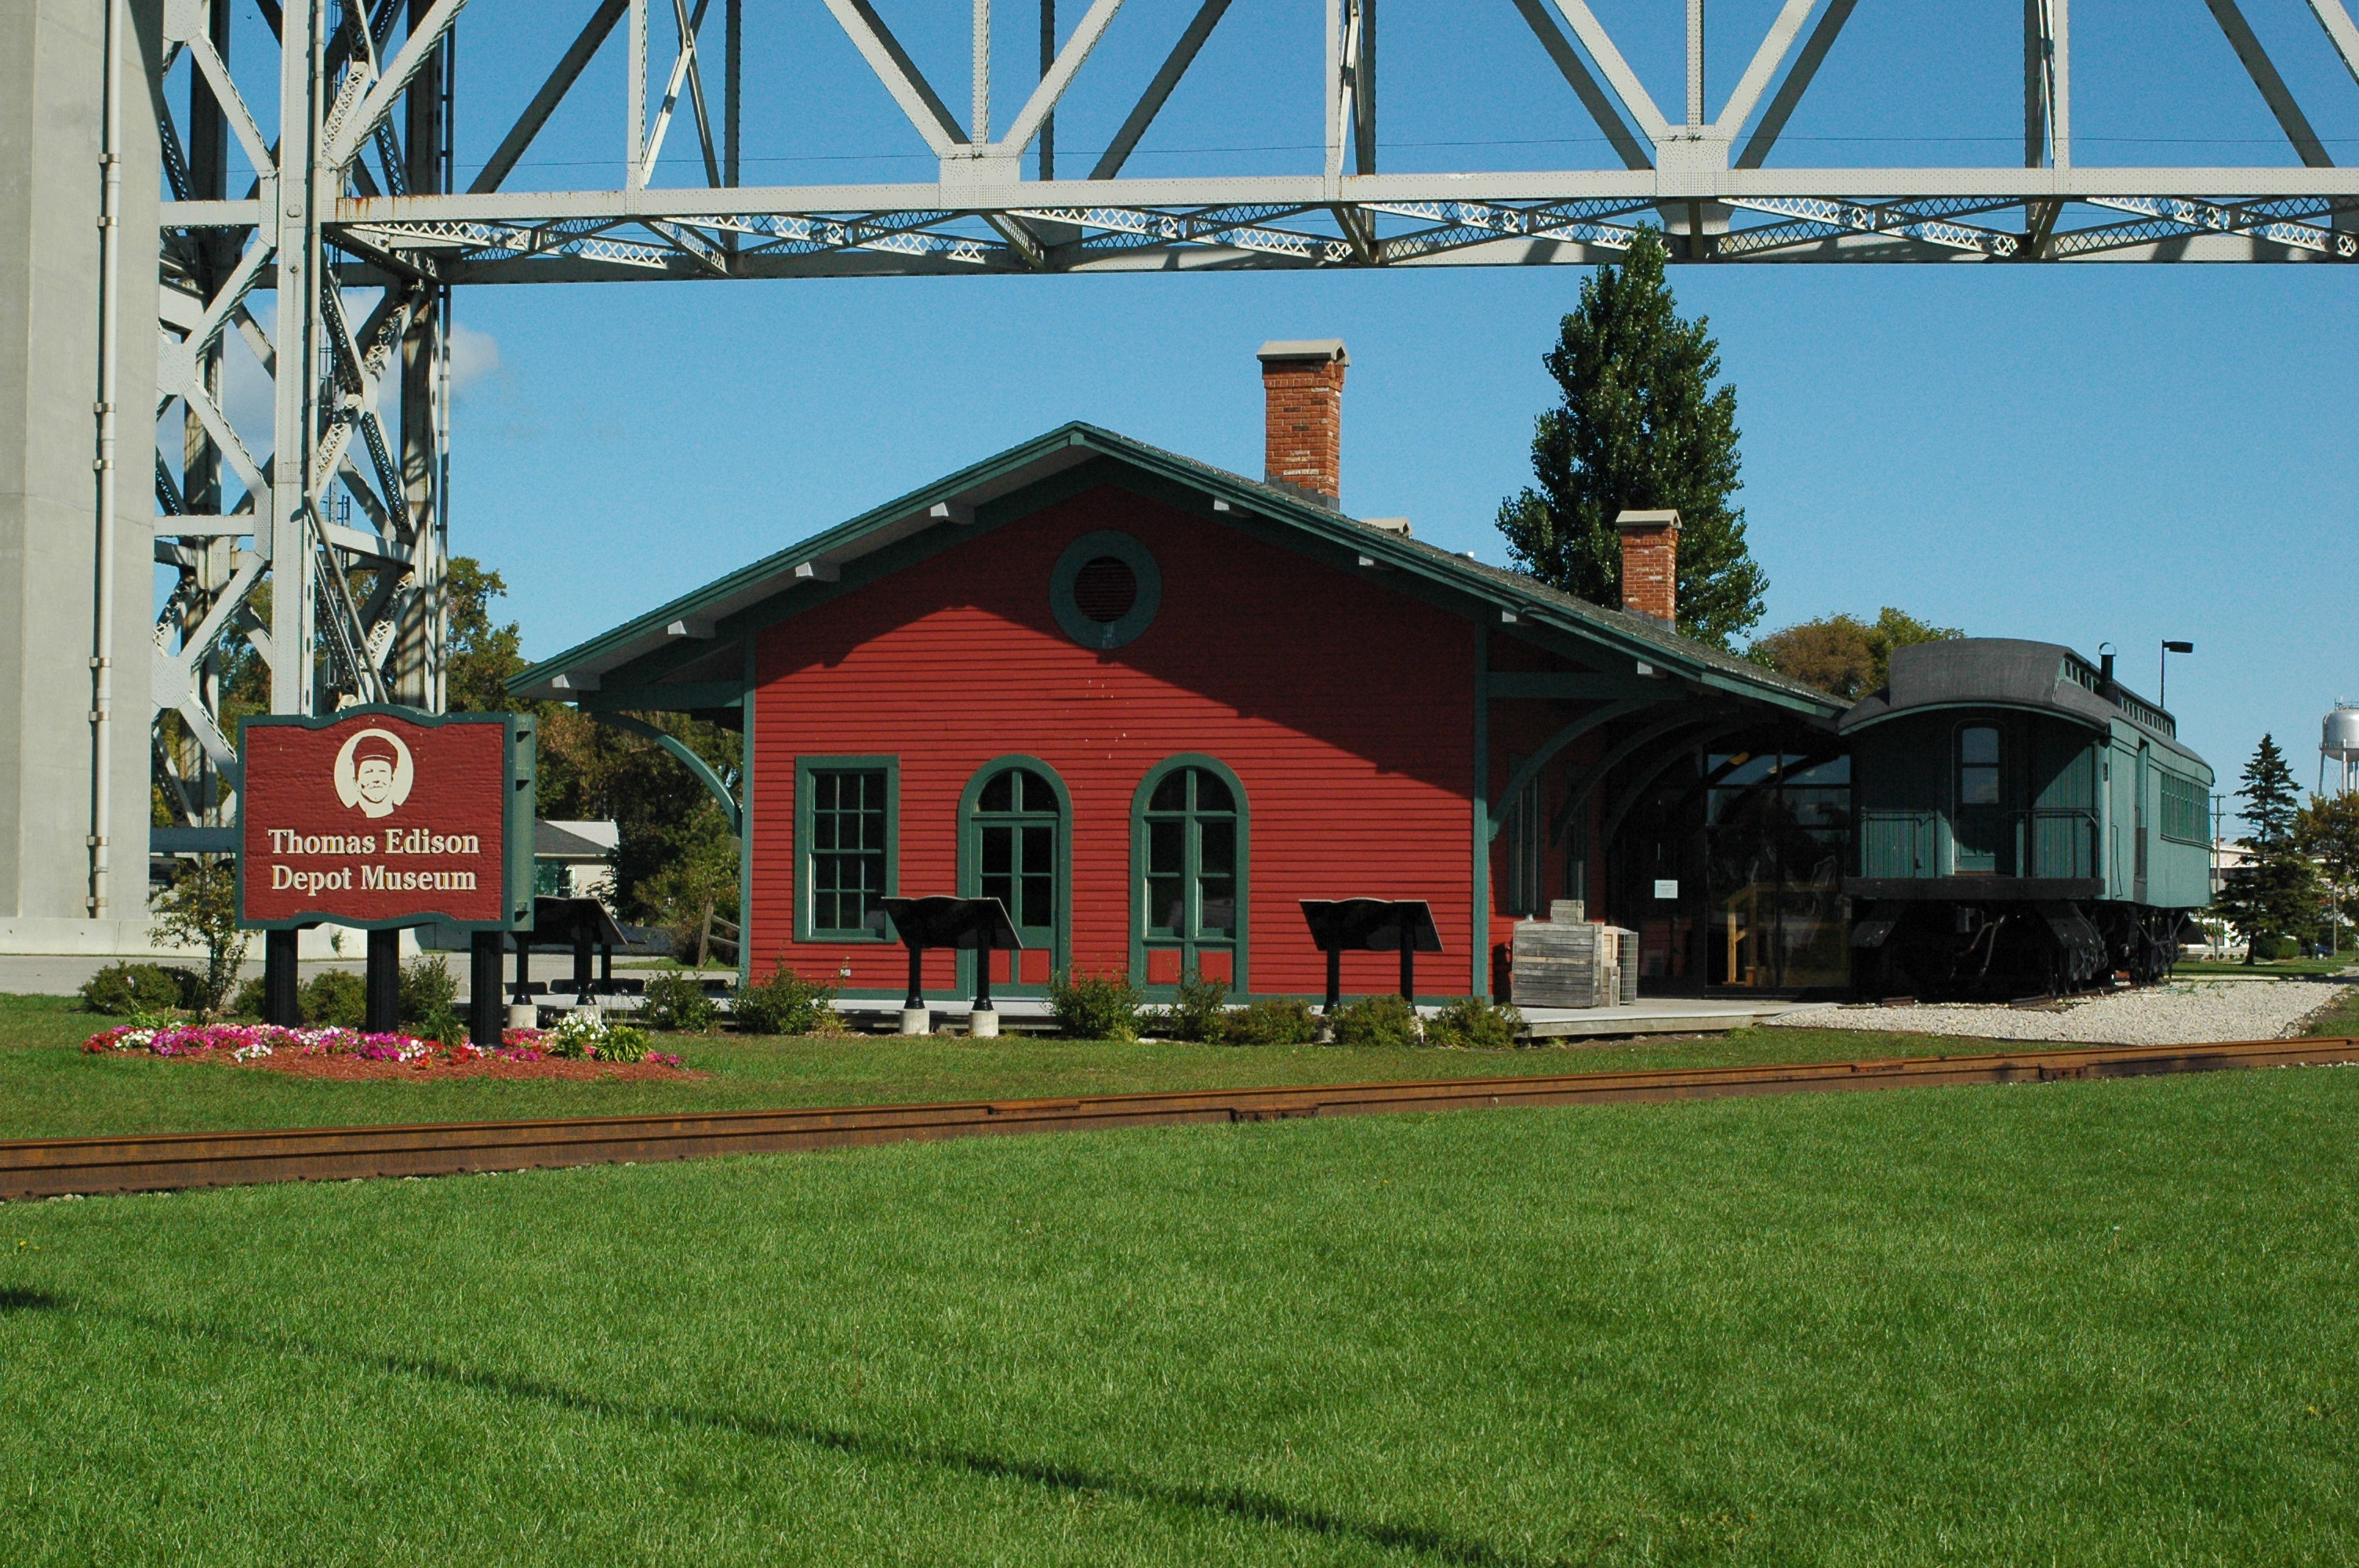 The train depot that is now the museum where Thomas Edison worked out of as a reporter.